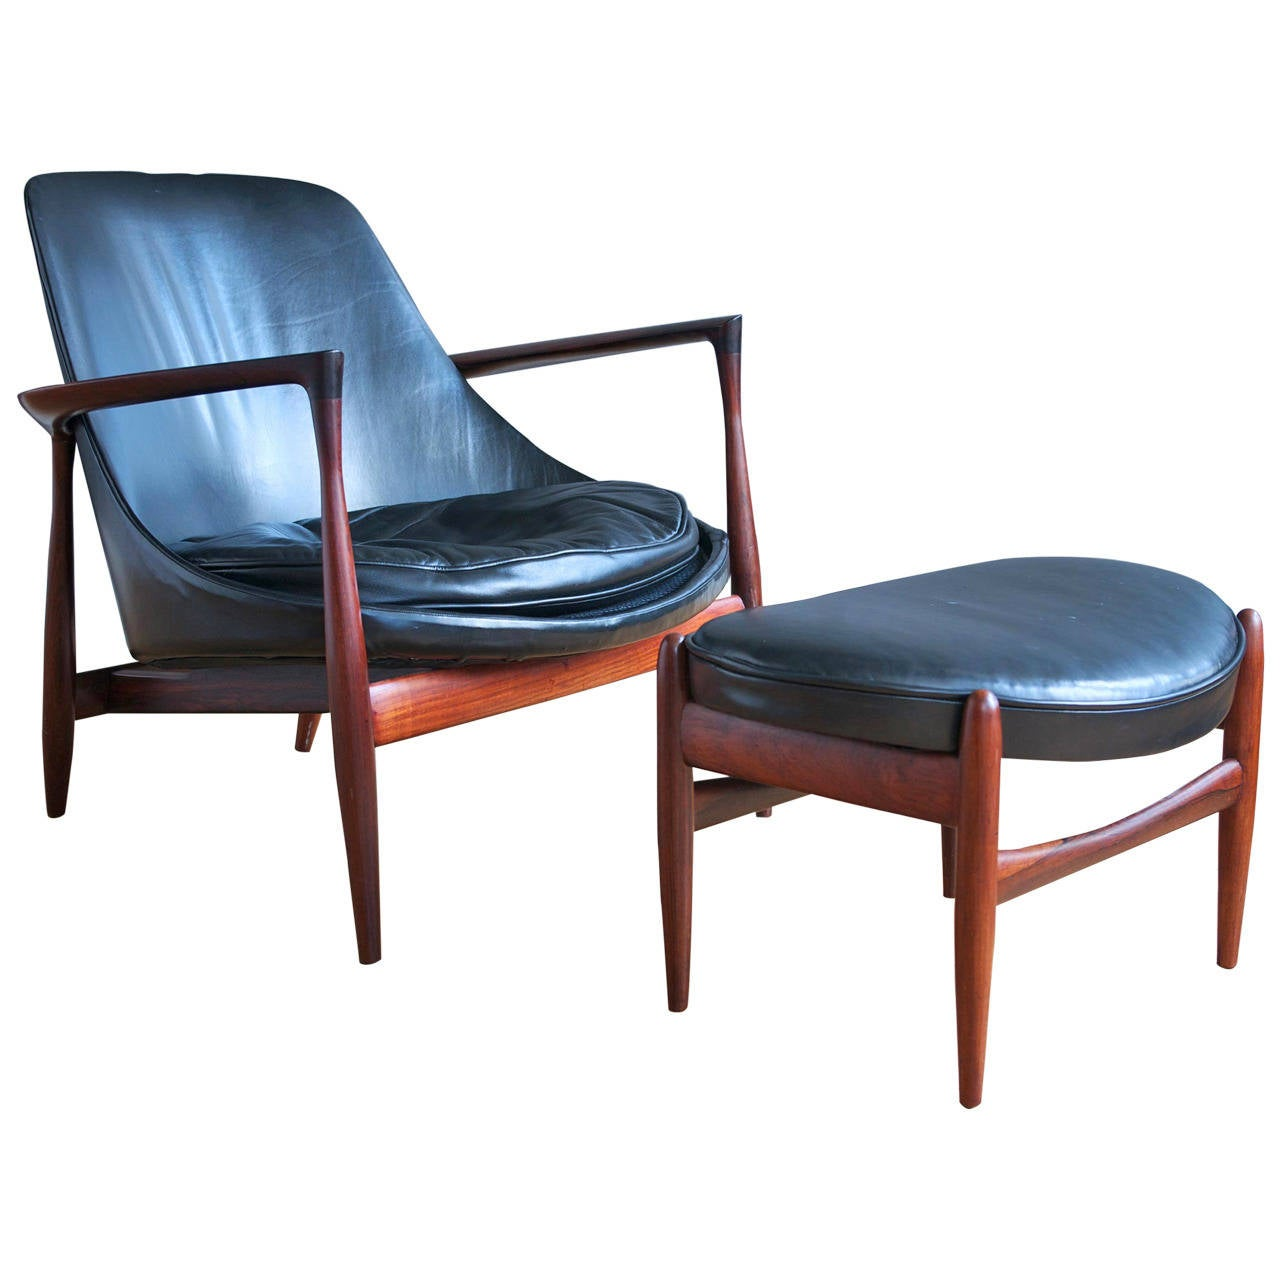 This sculptural pair of lounge chairs by ib kofod larsen is no longer - Ib Kofod Larsen Rosewood Elizabeth Lounge Chair